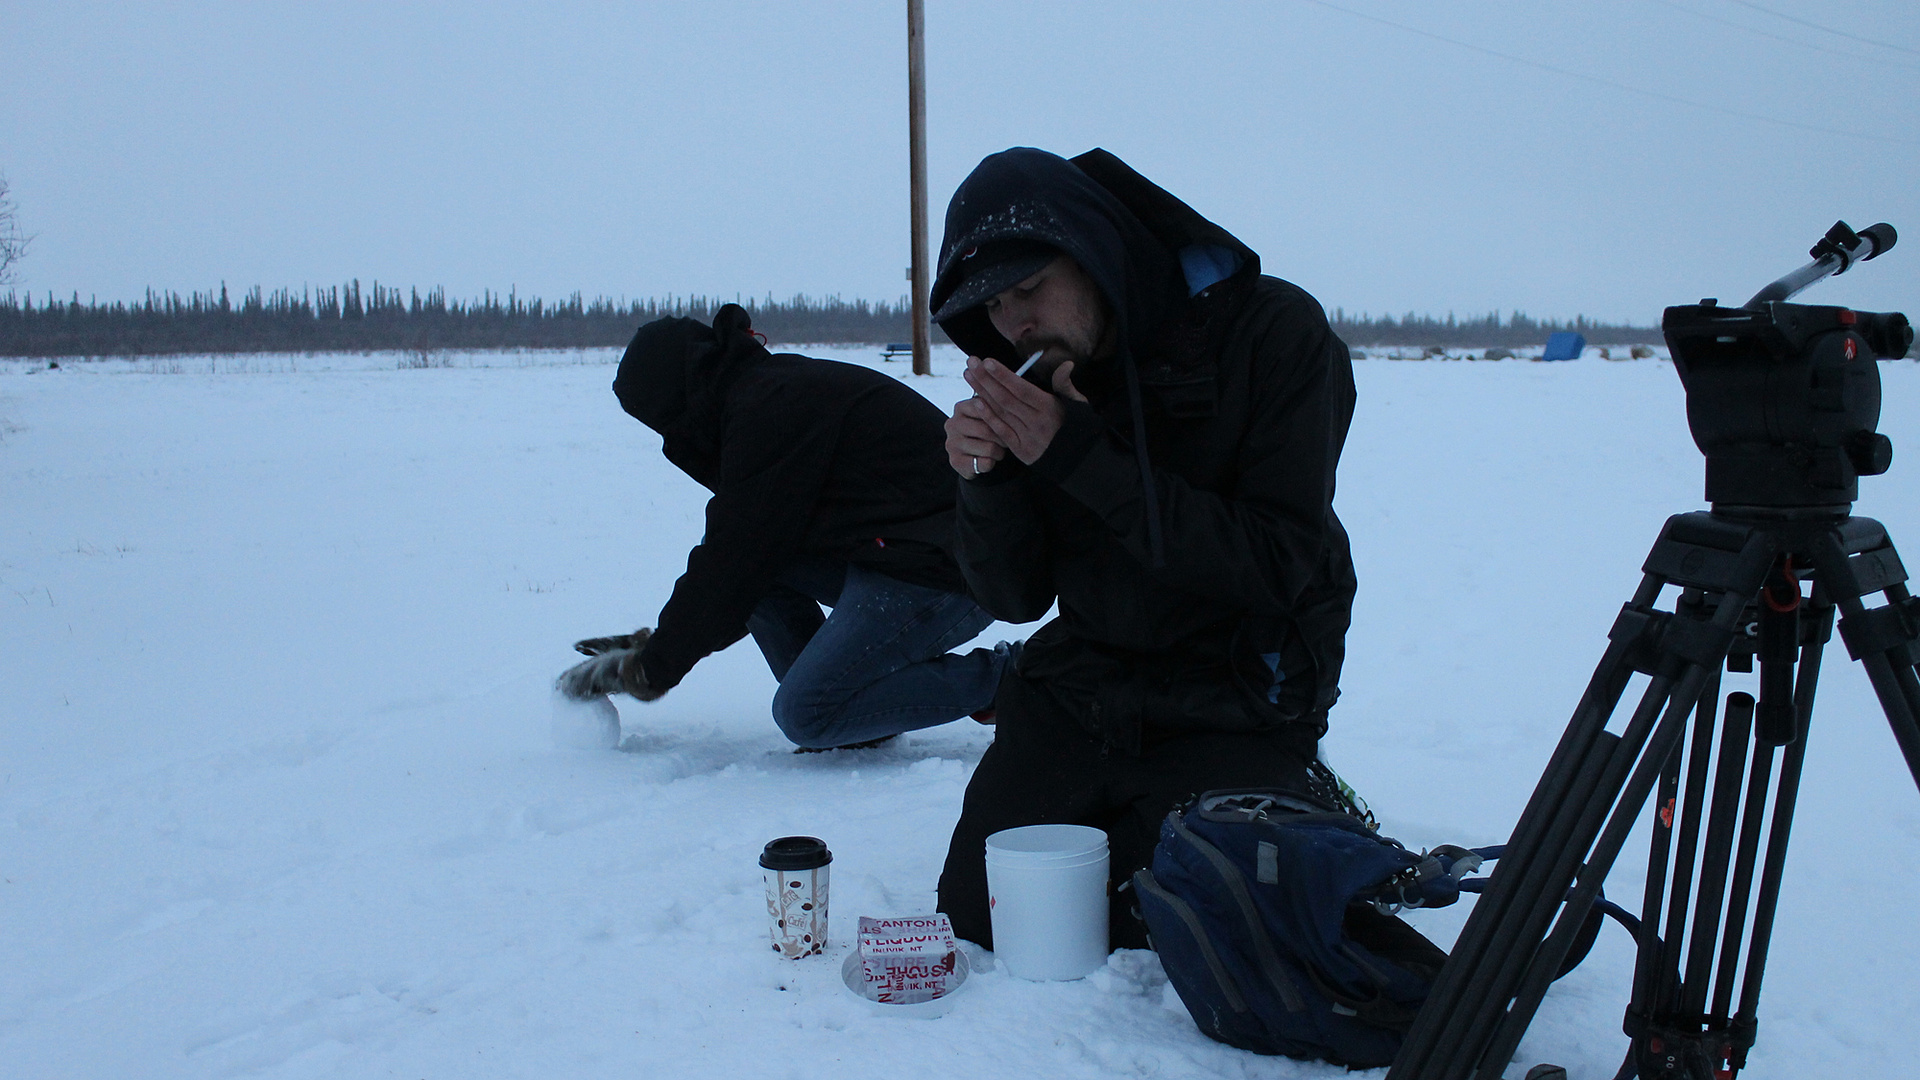 Rolling snow and smokes